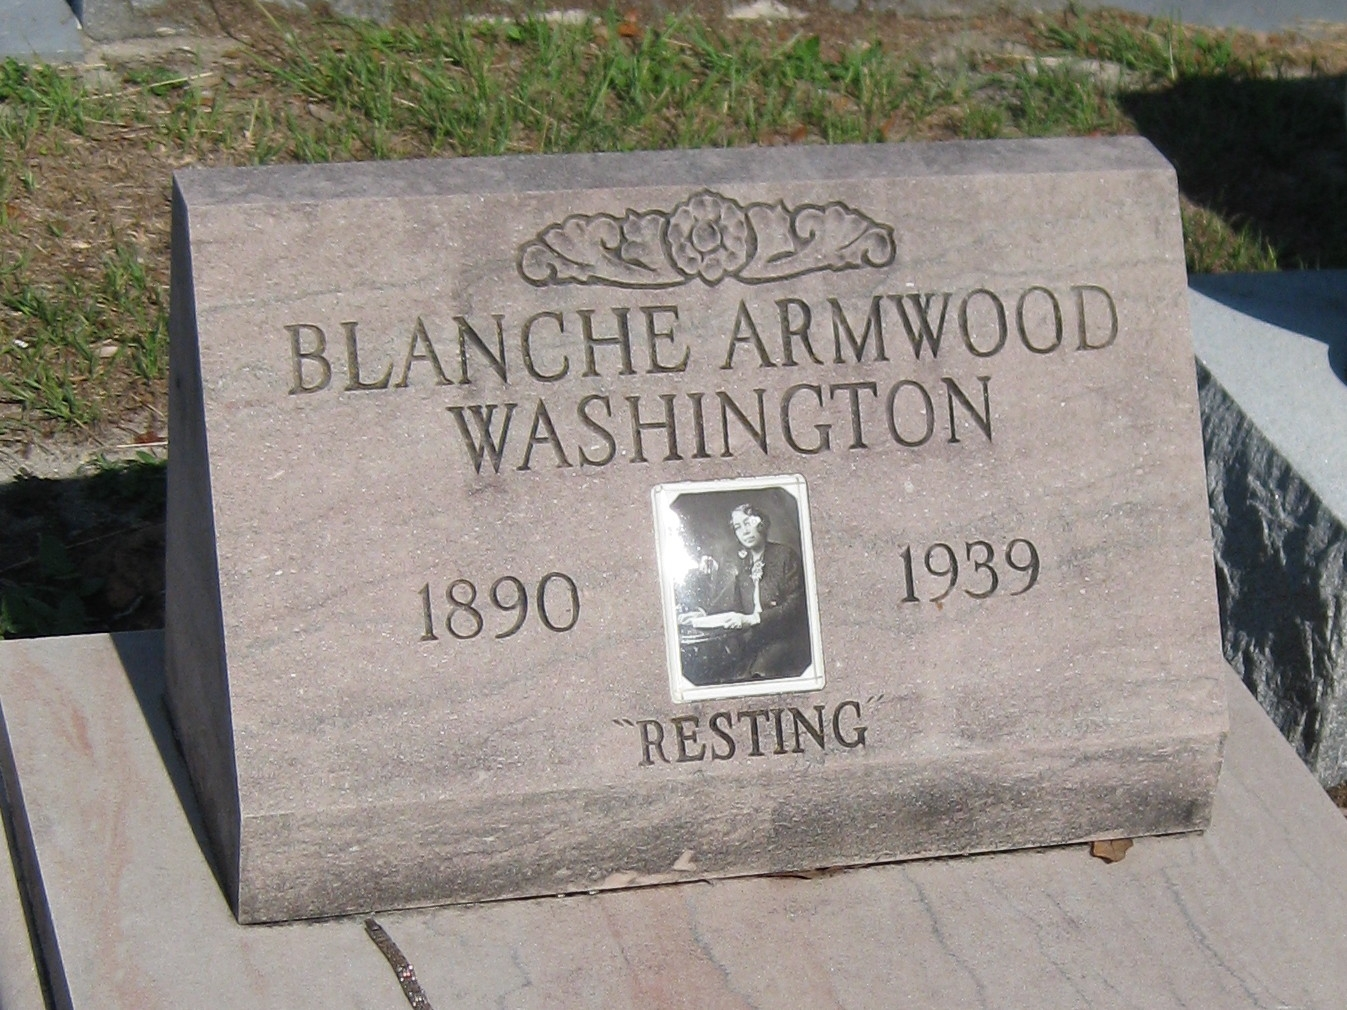 Grave of Blanche Armwood Washington <small>(1890-1939)</small>